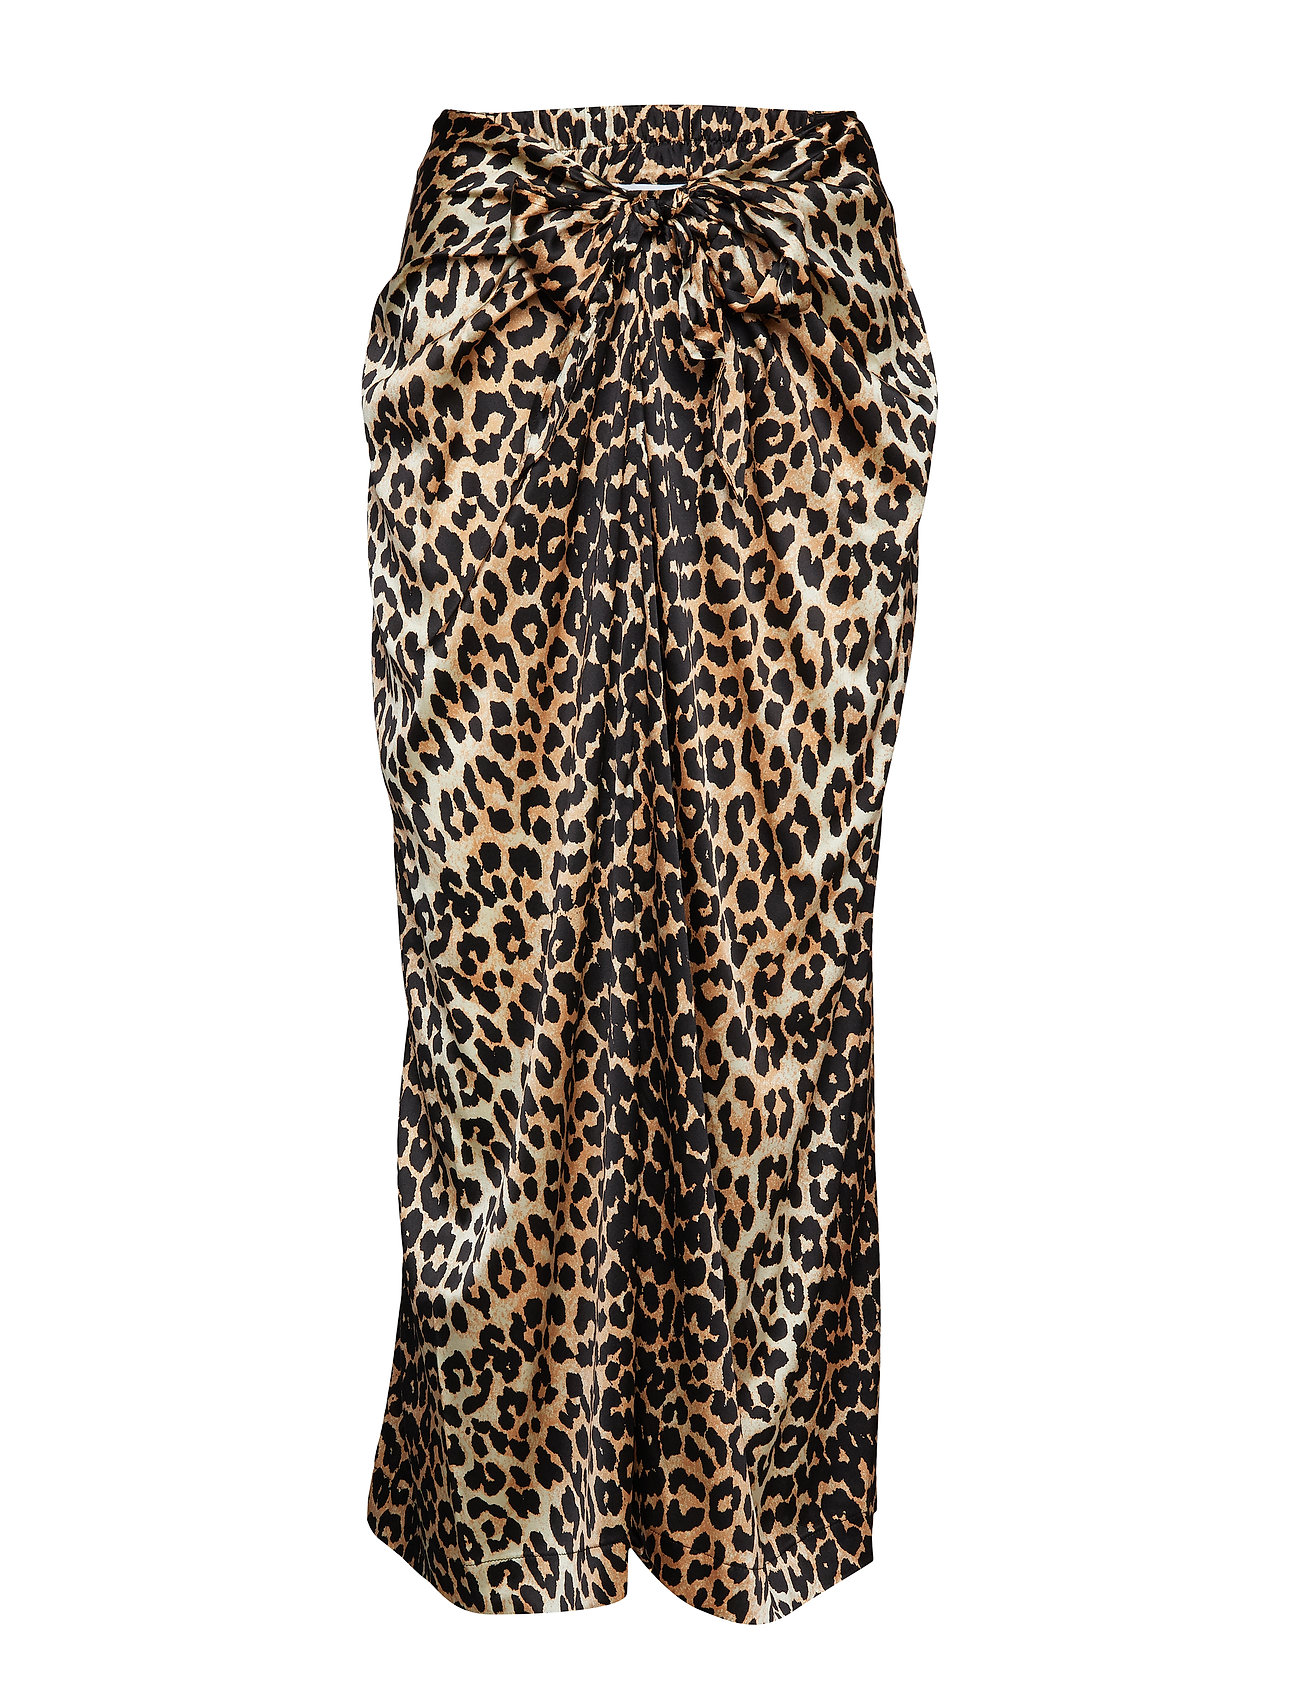 Ganni Silk Stretch Satin Skirt - LEOPARD